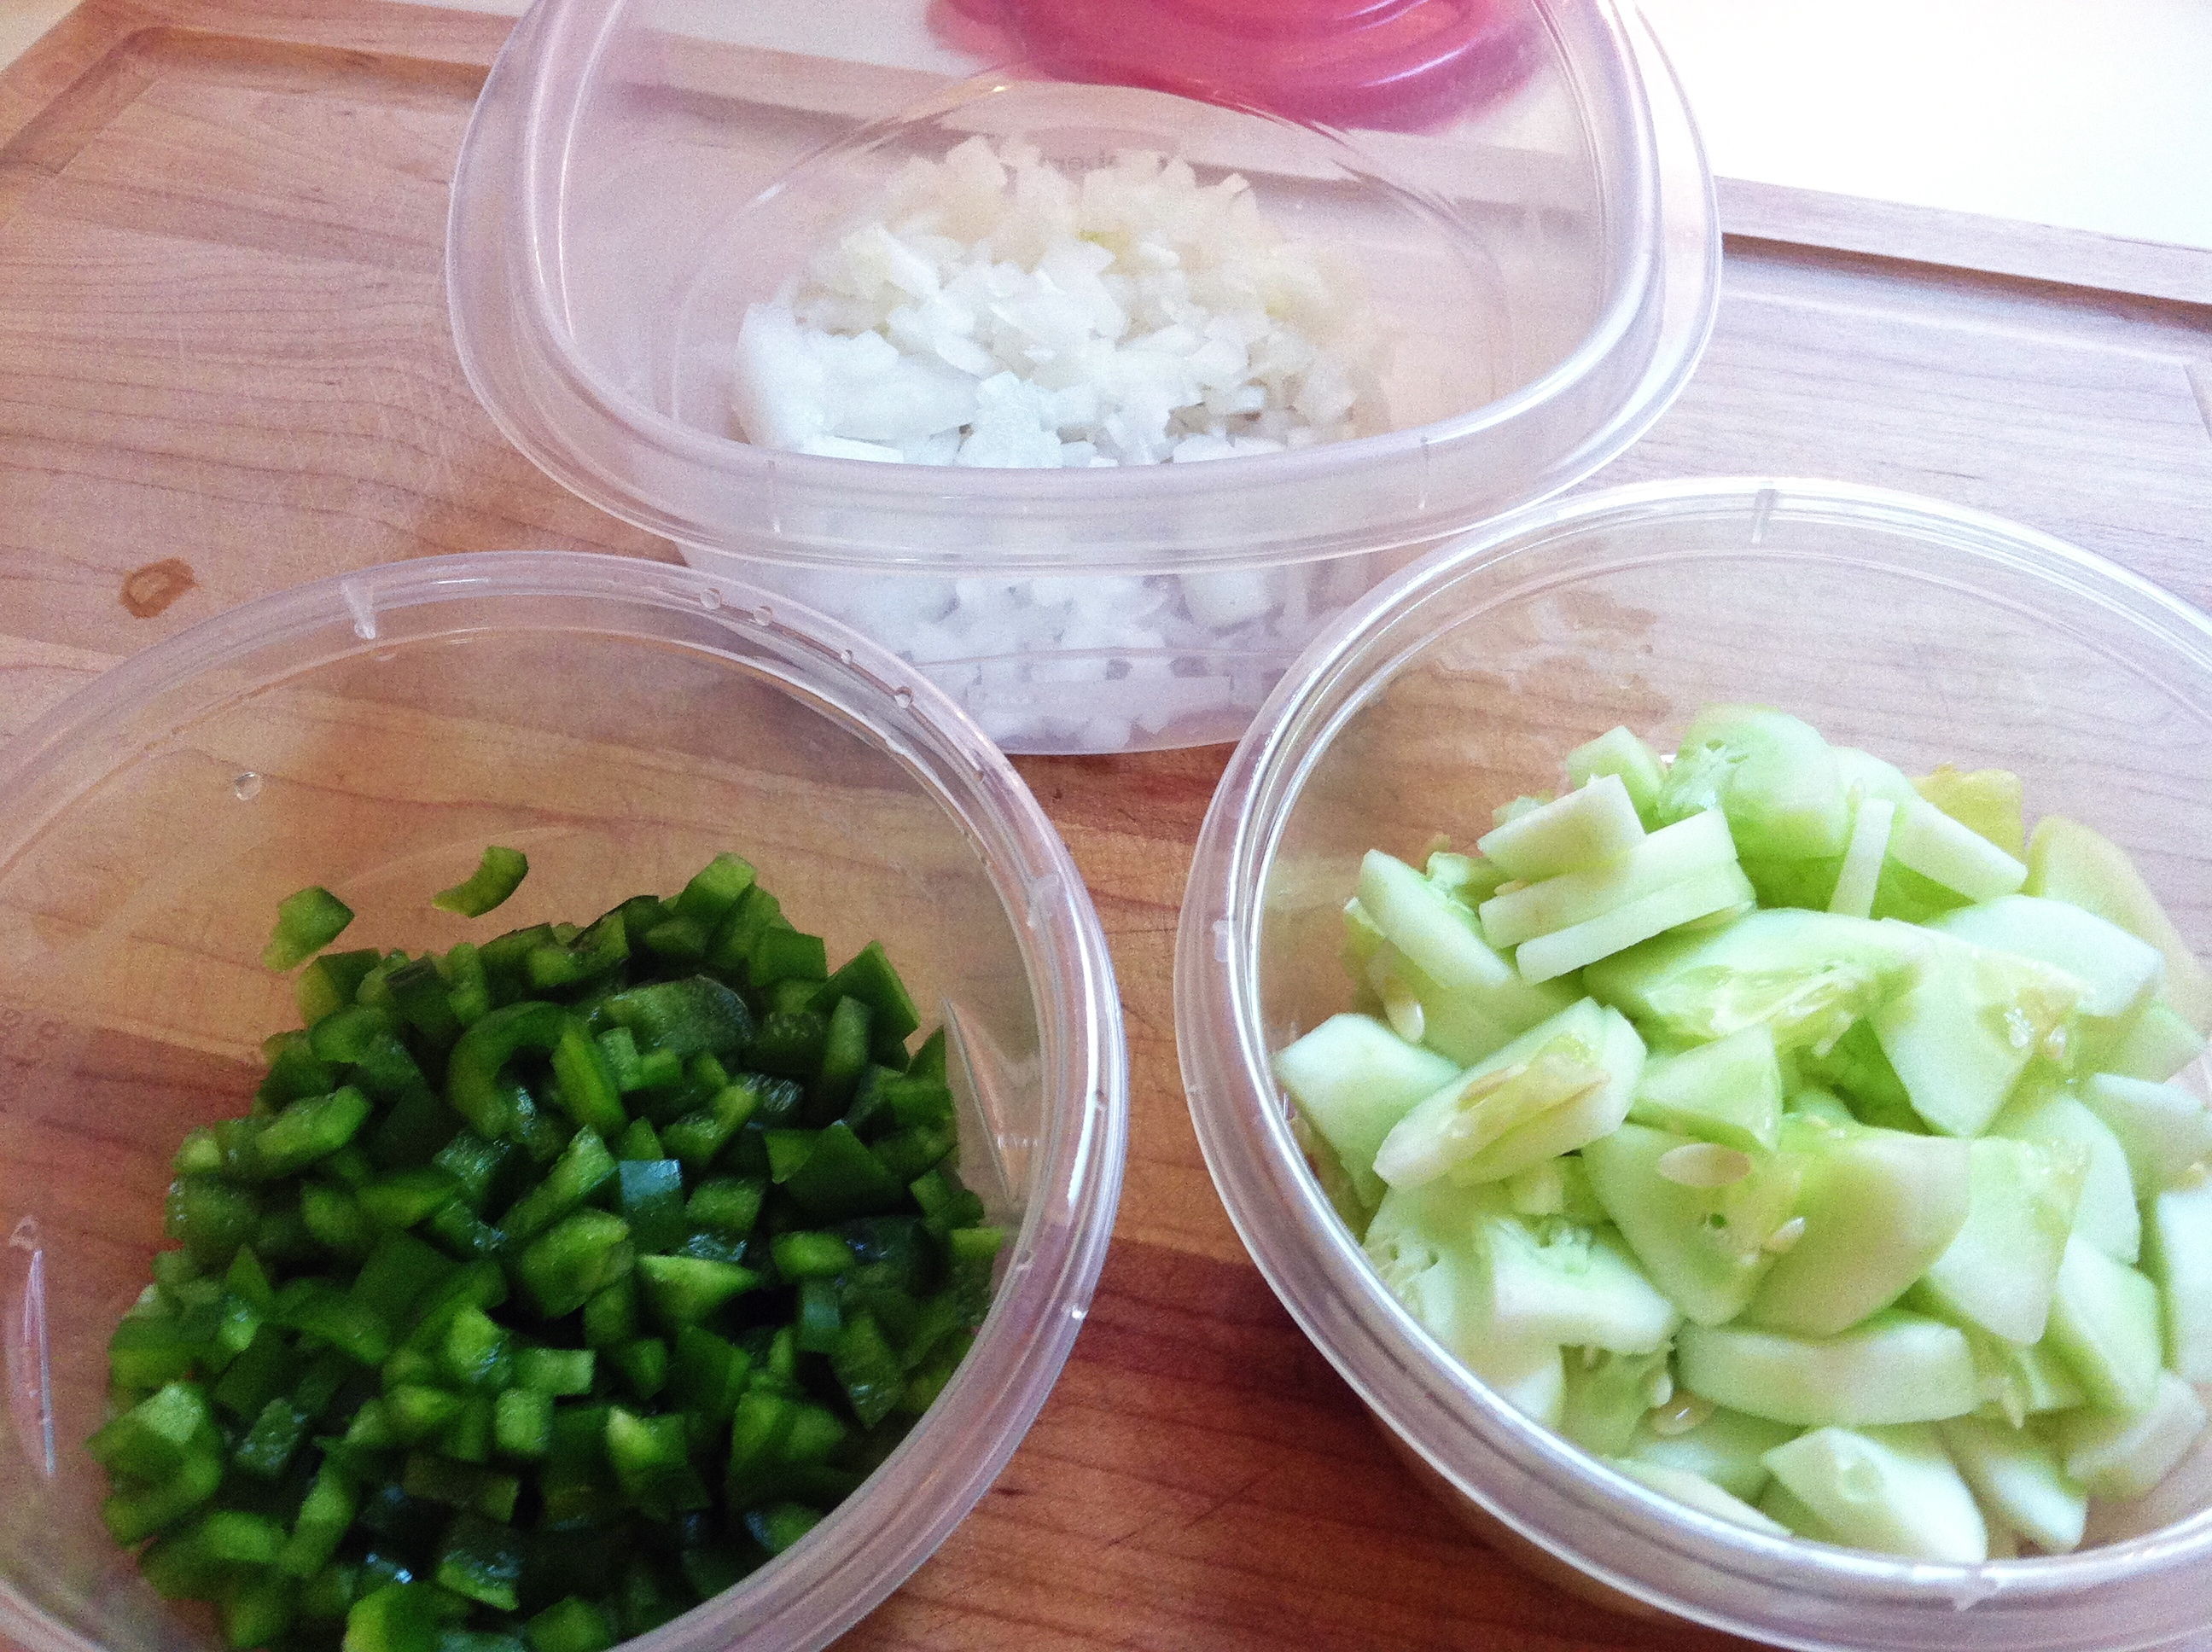 Prepped veggies